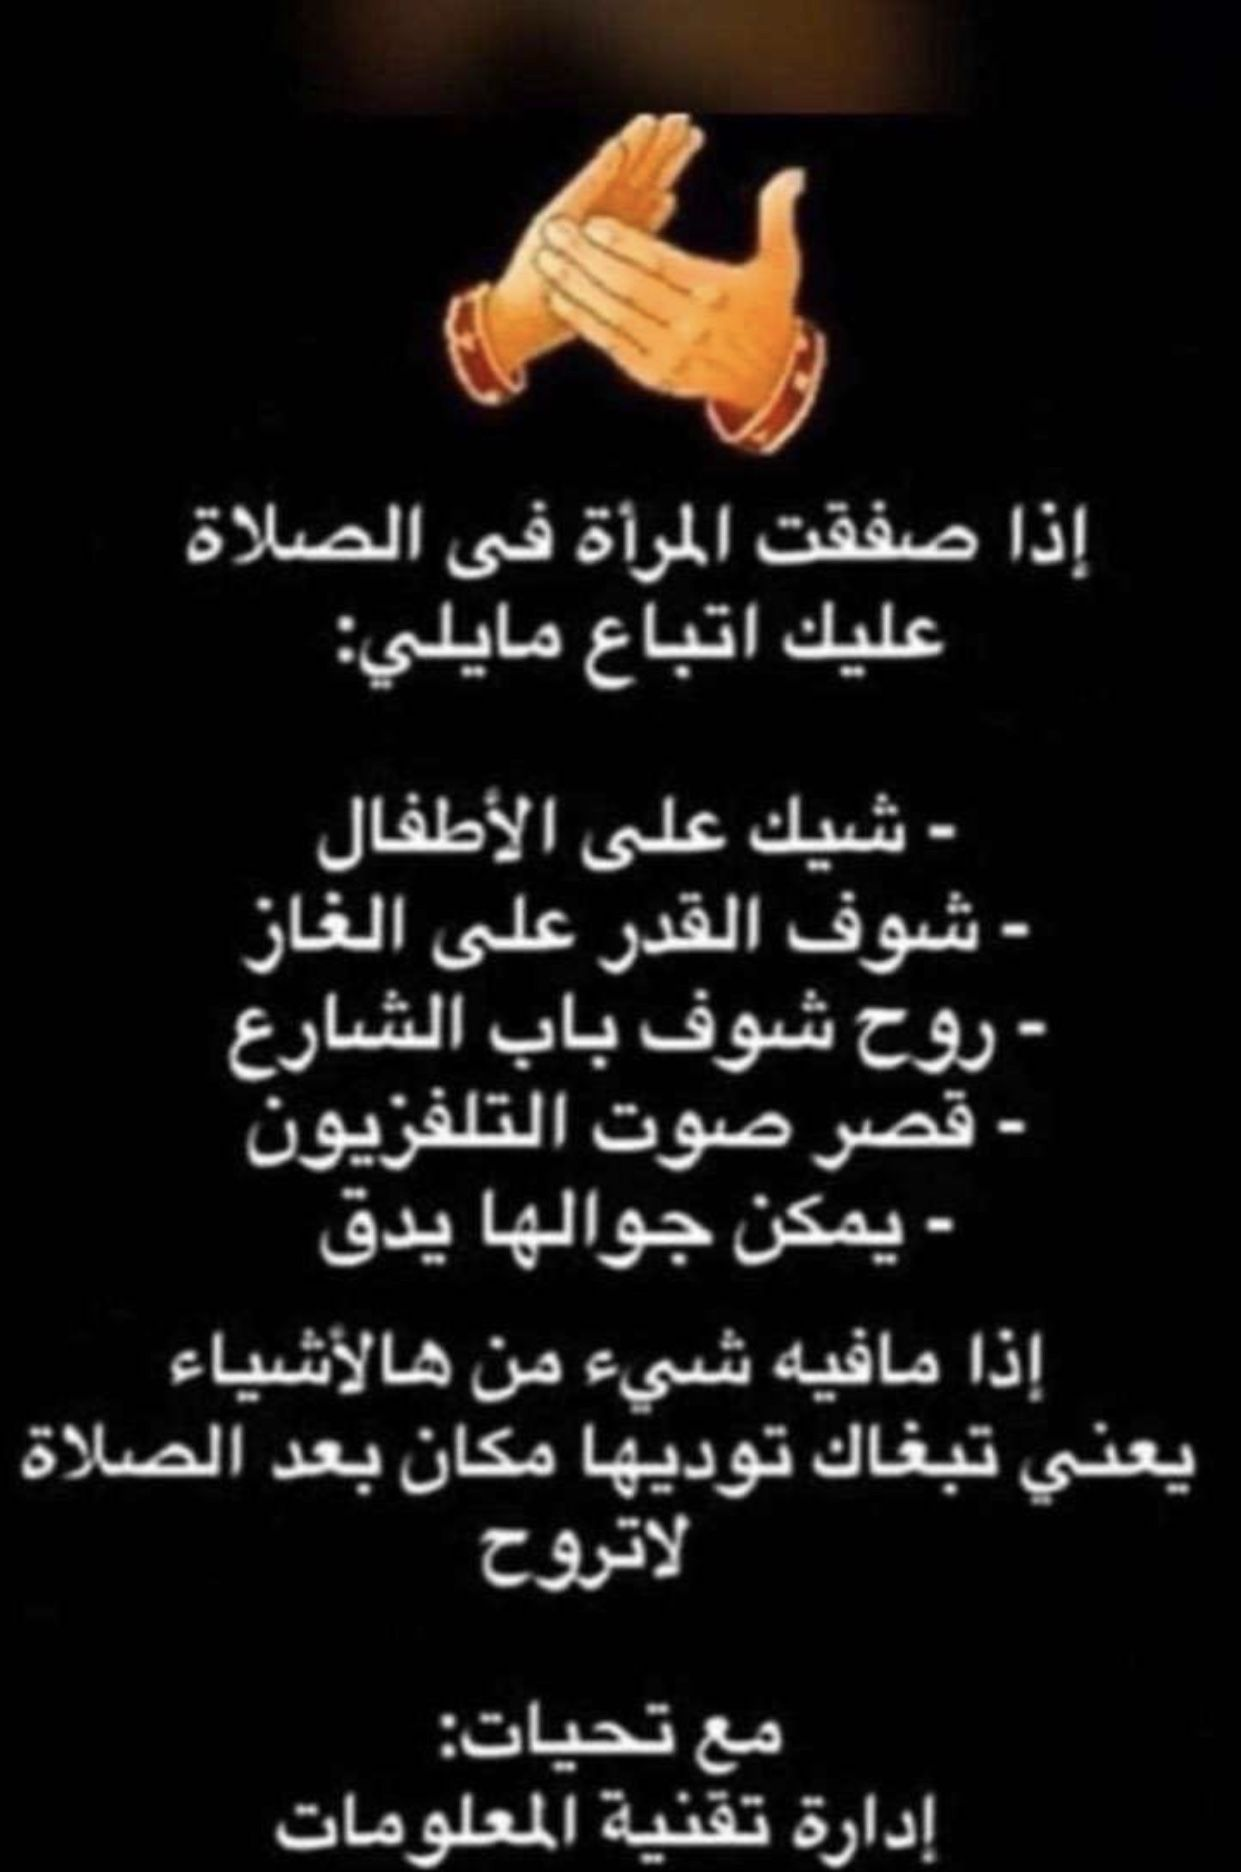 Arabic Quotes Twitter Sign Up Quotes